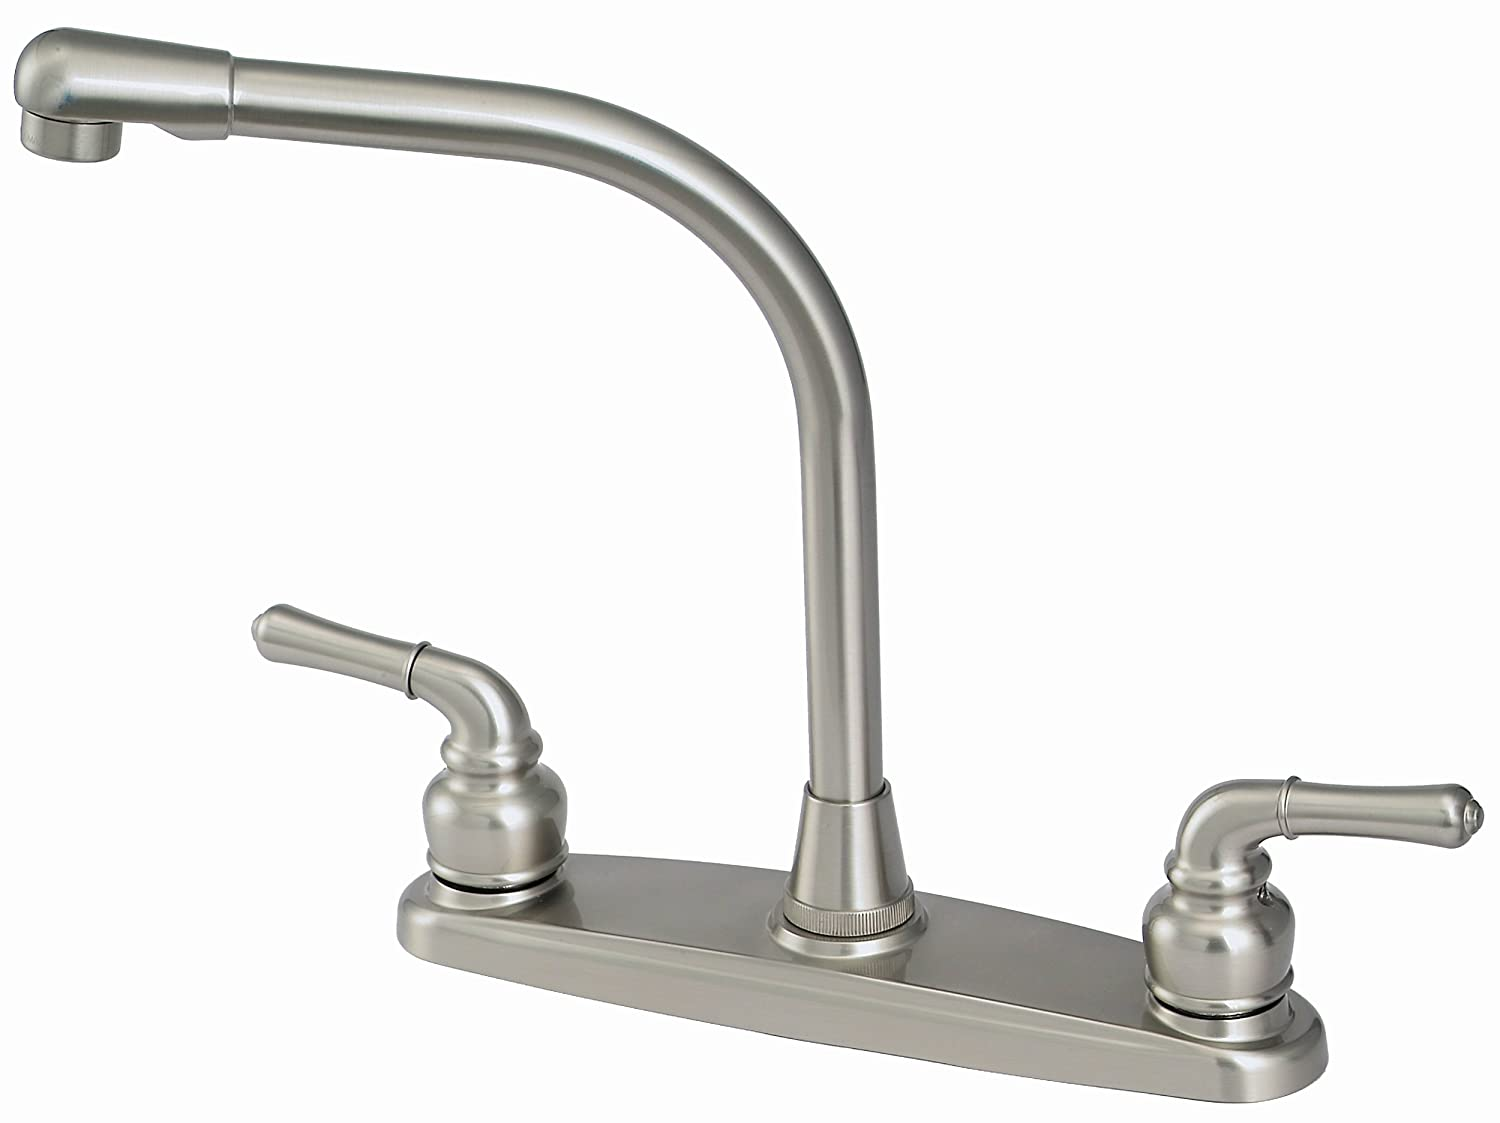 8 Kitchen Deck Faucet, Satin Nickel Finish, Washerless – By Plumb USA